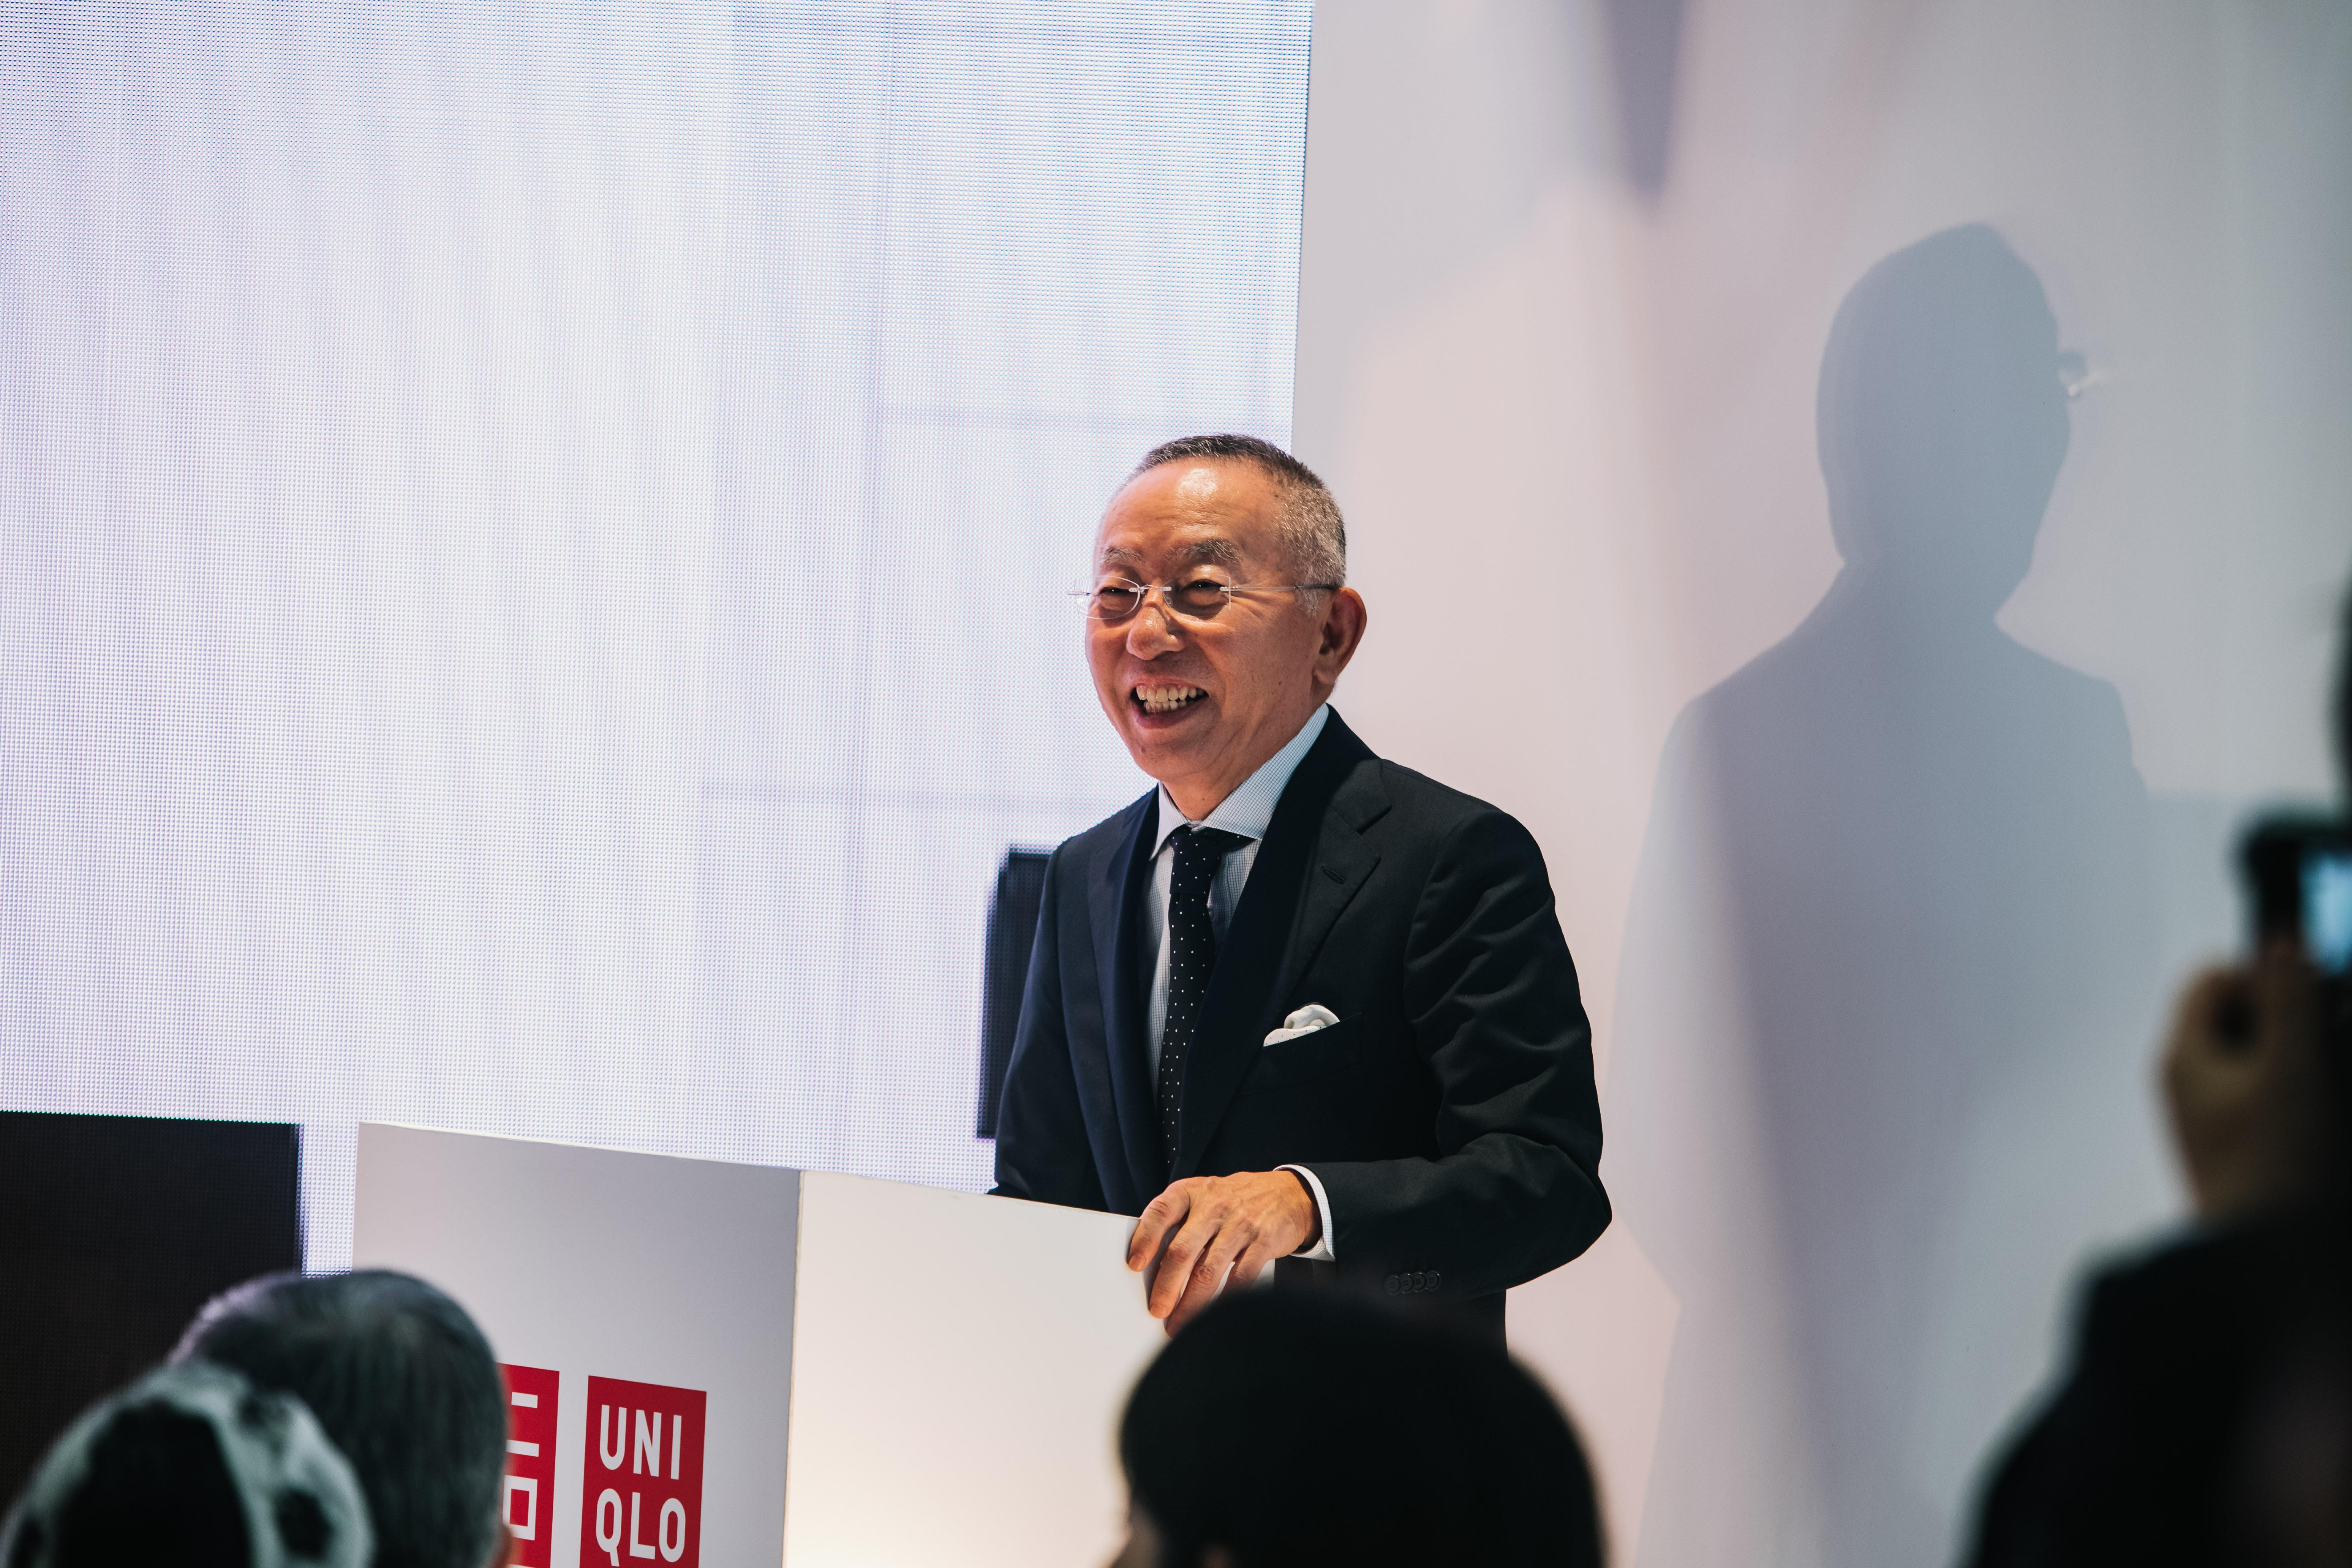 Uniqlo's president Tadashi Yanai changes stride in the world of fashion retailers